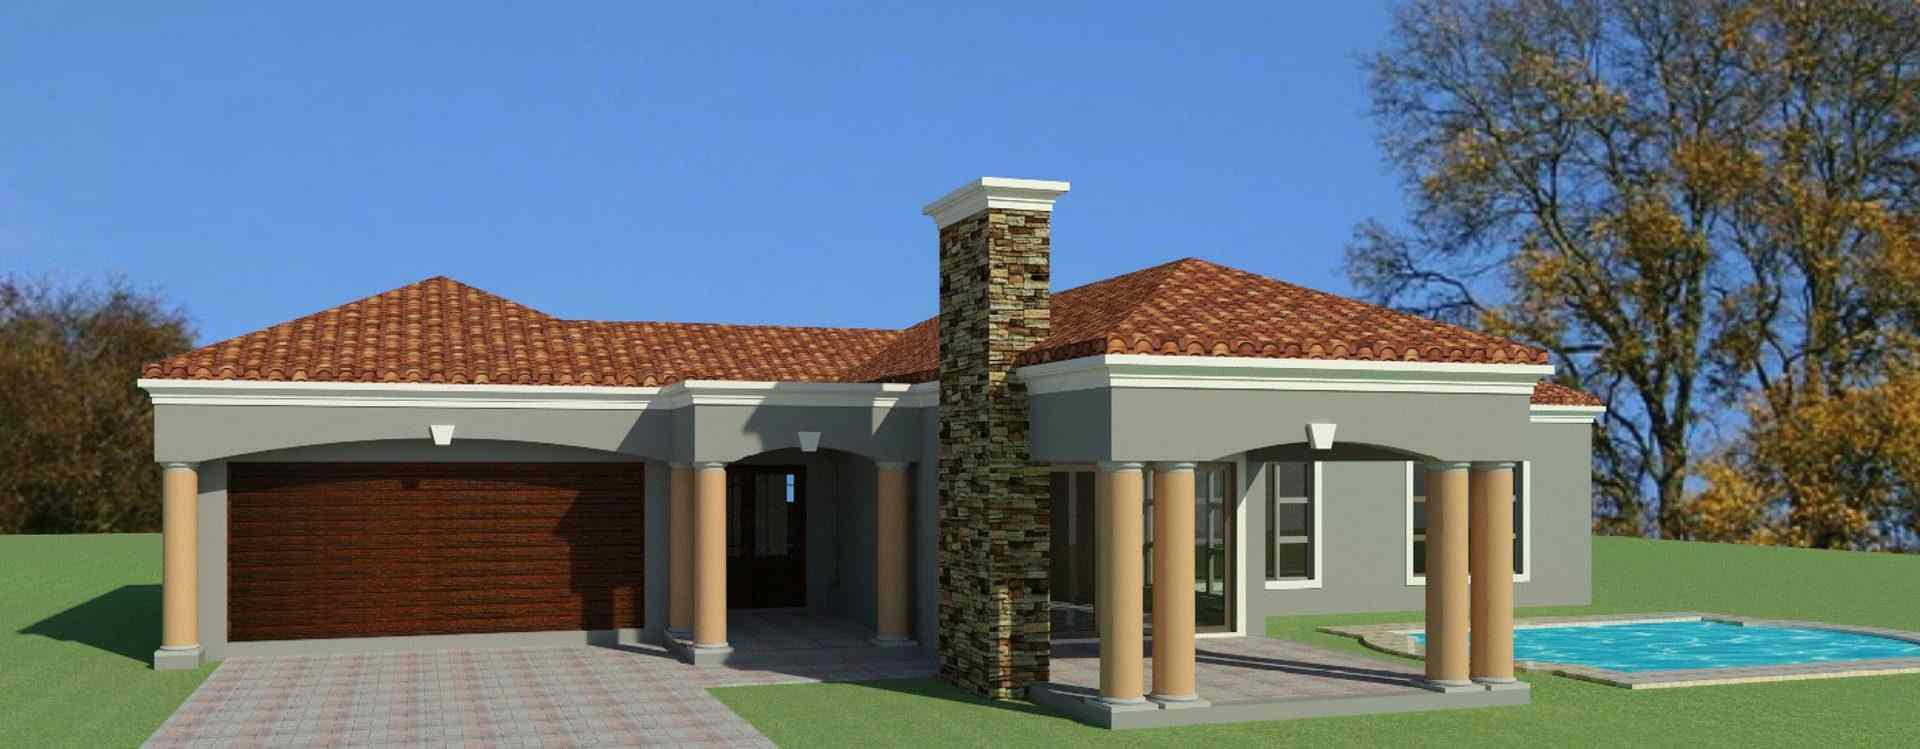 3 Bedroom House Plans South Africa House Plans With Photos Nethouseplans